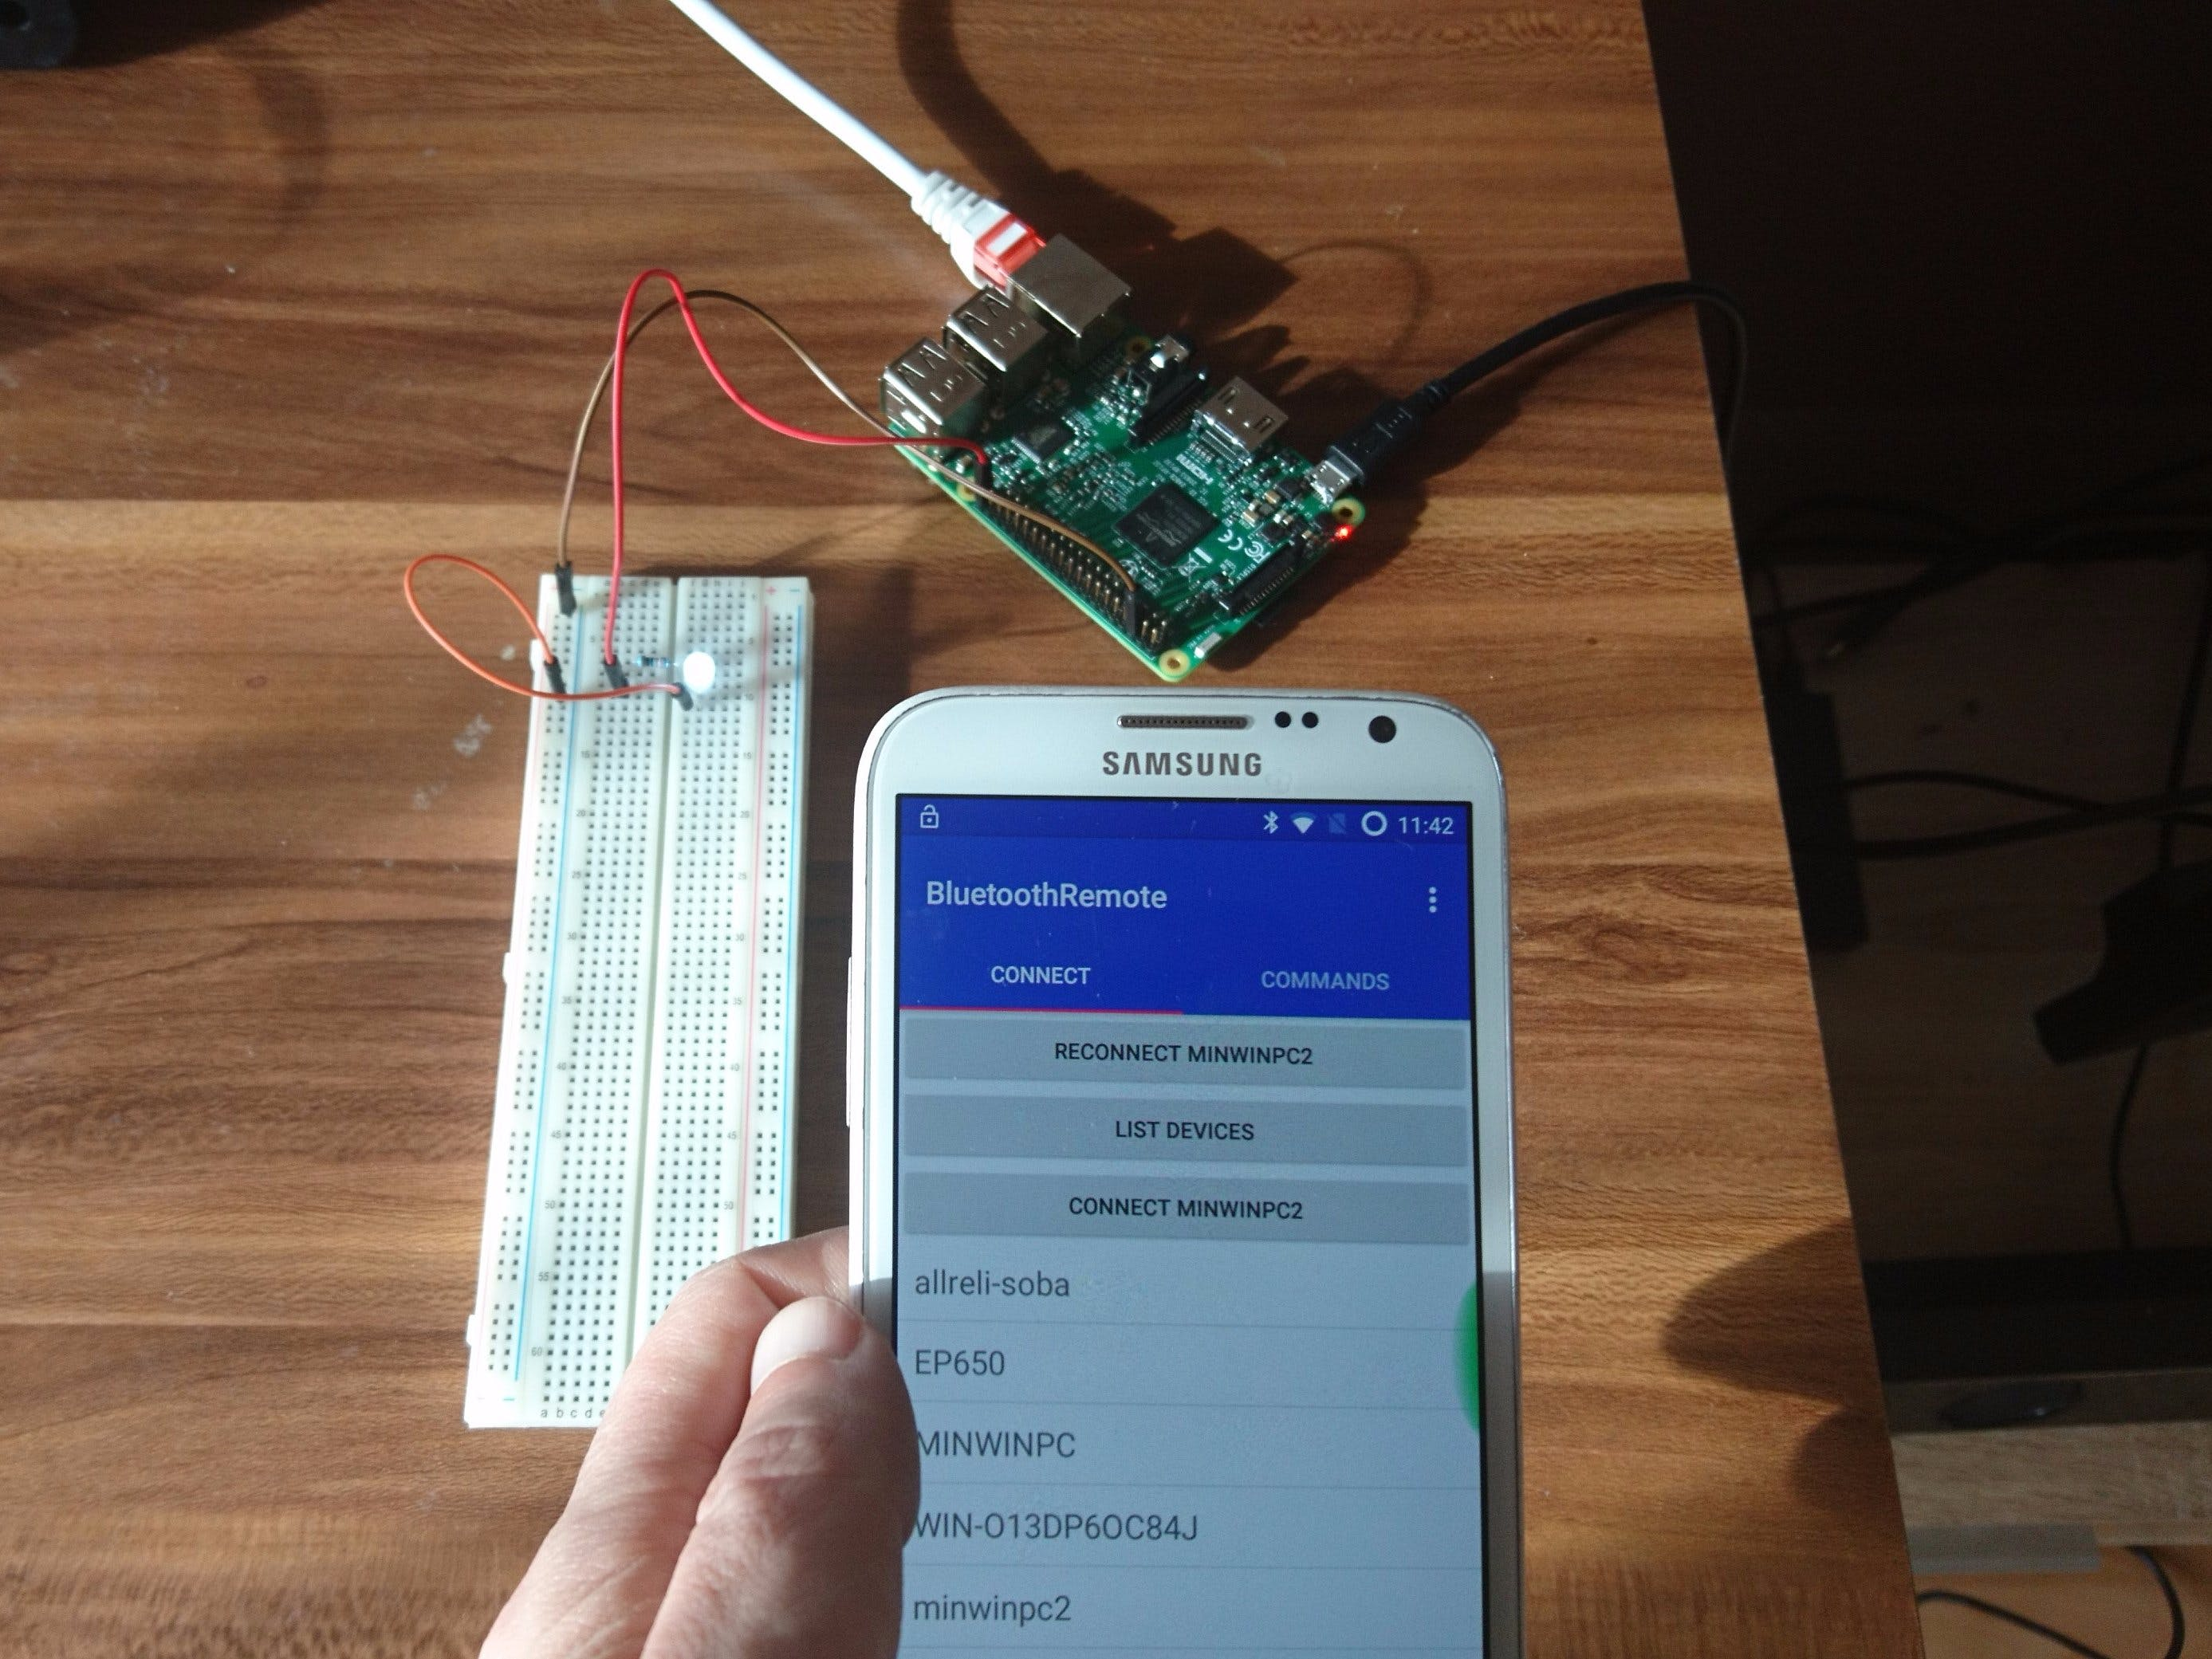 Bluetooth Remote Control (Android) for Windows IoT devices